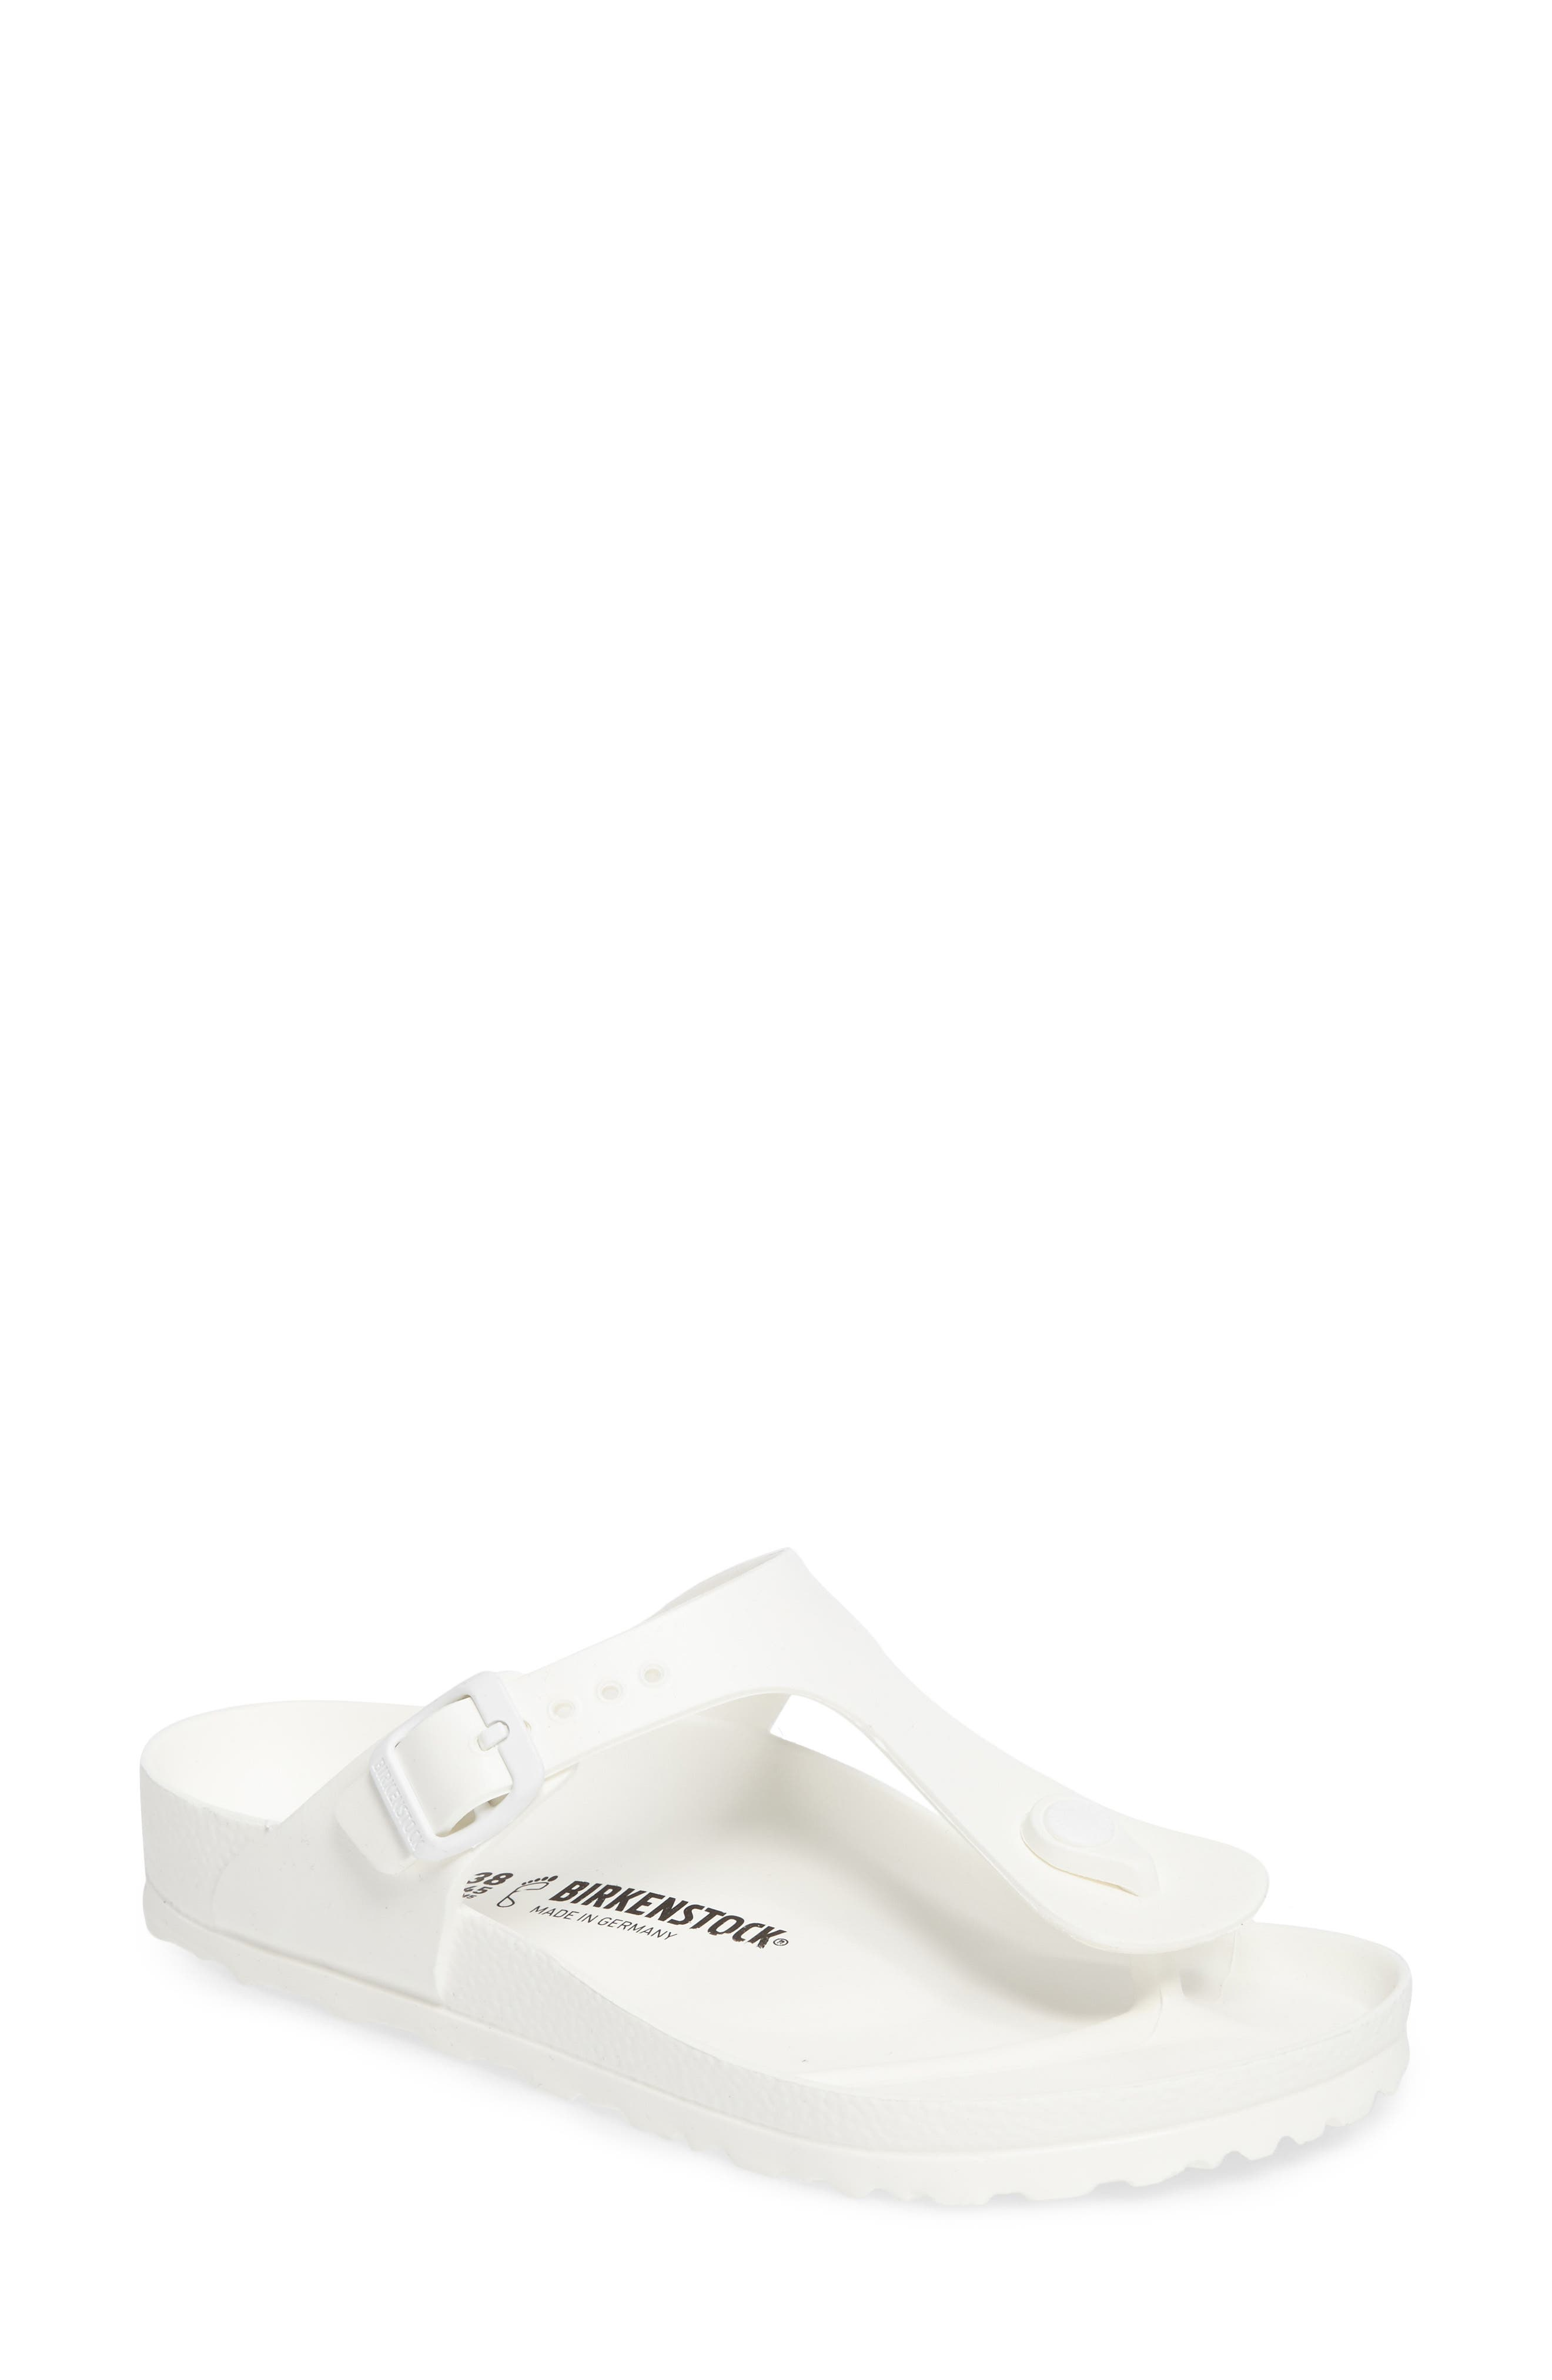 Essentials - Gizeh Flip Flop,                         Main,                         color, WHITE